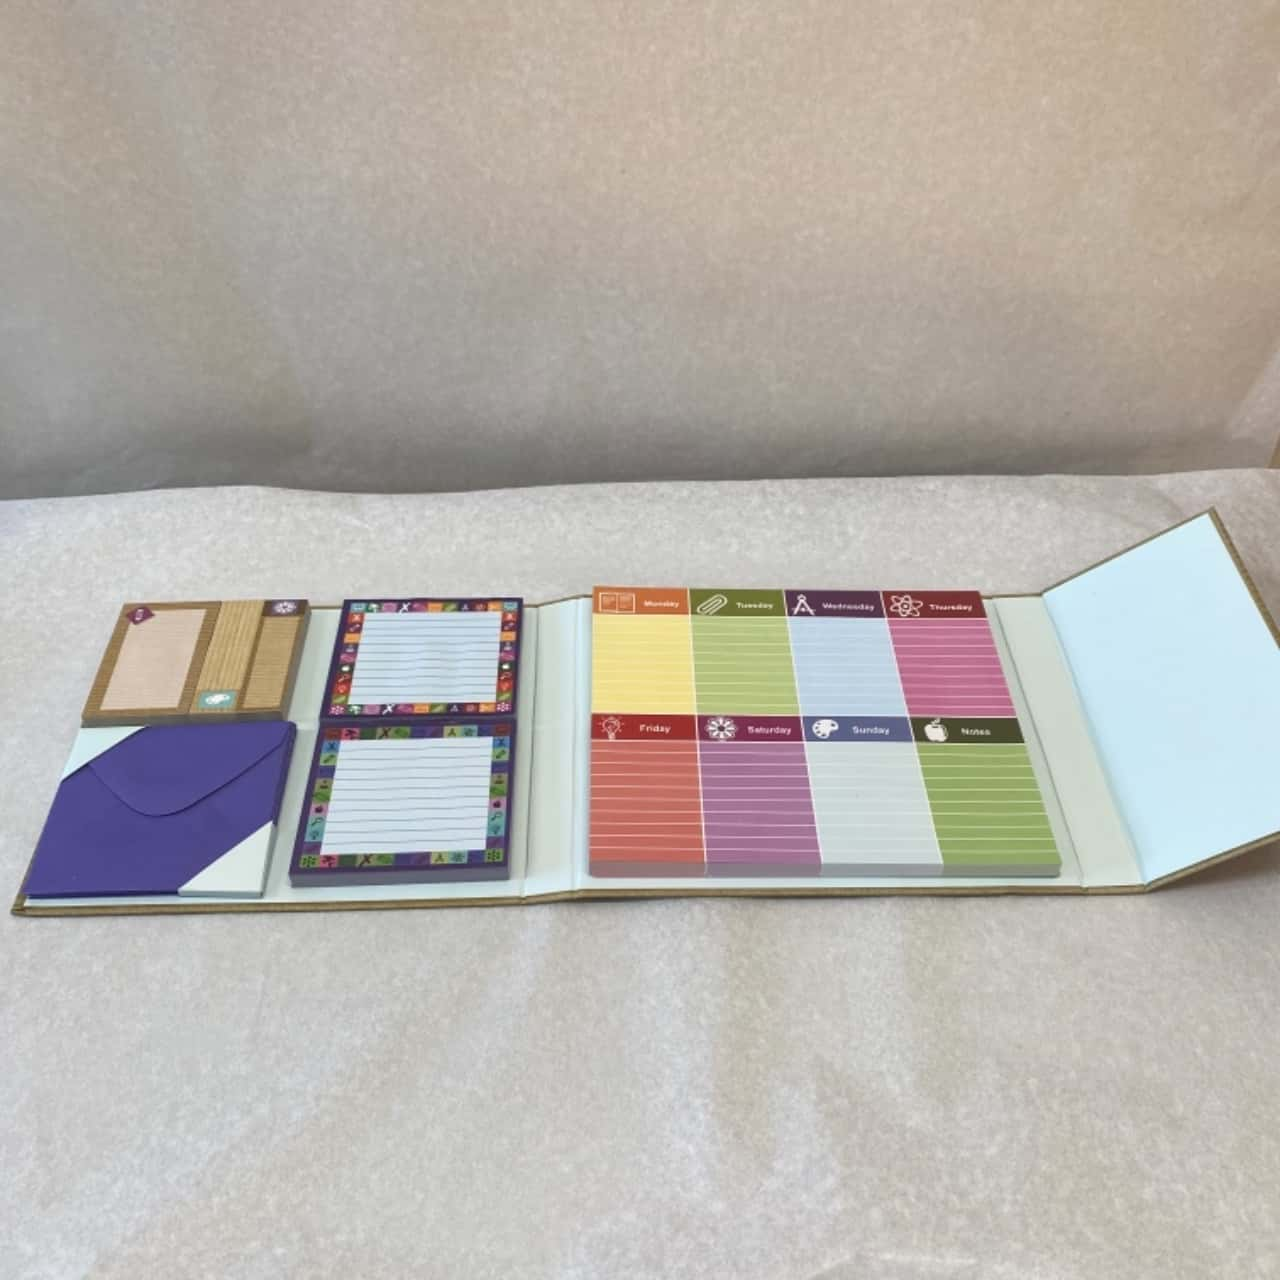 Desk Weekly Organizer and Notes - New in Package